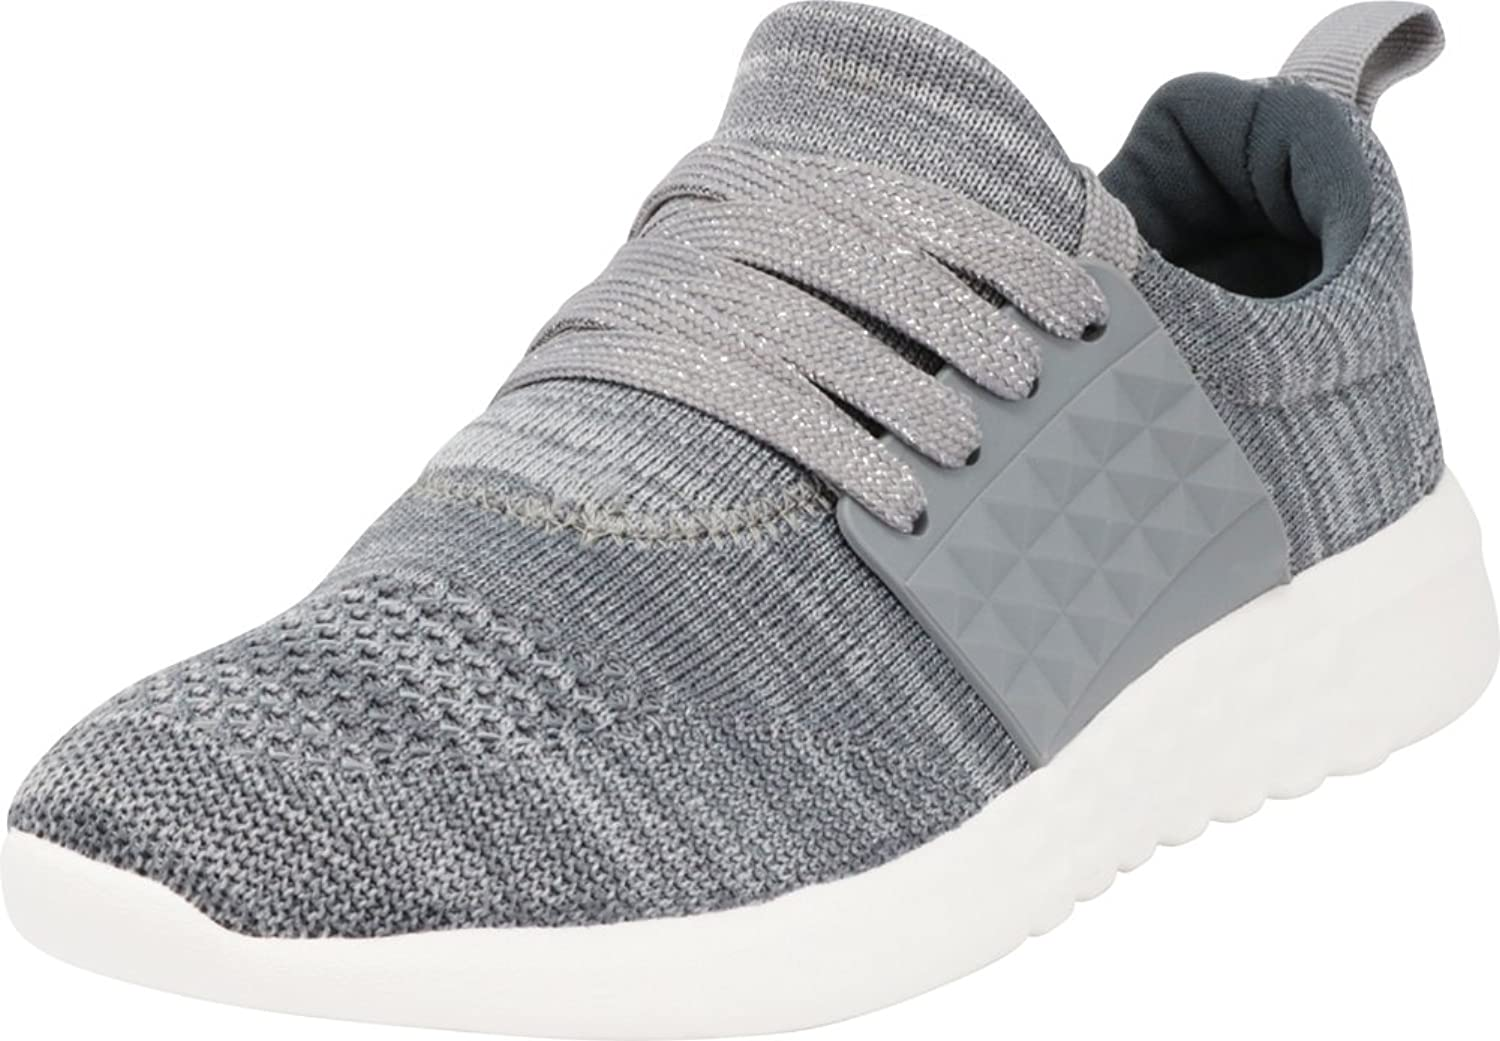 Cambridge Select Women's Breathable Lightweight Knit Lace-Up Casual Sport Fashion Sneaker